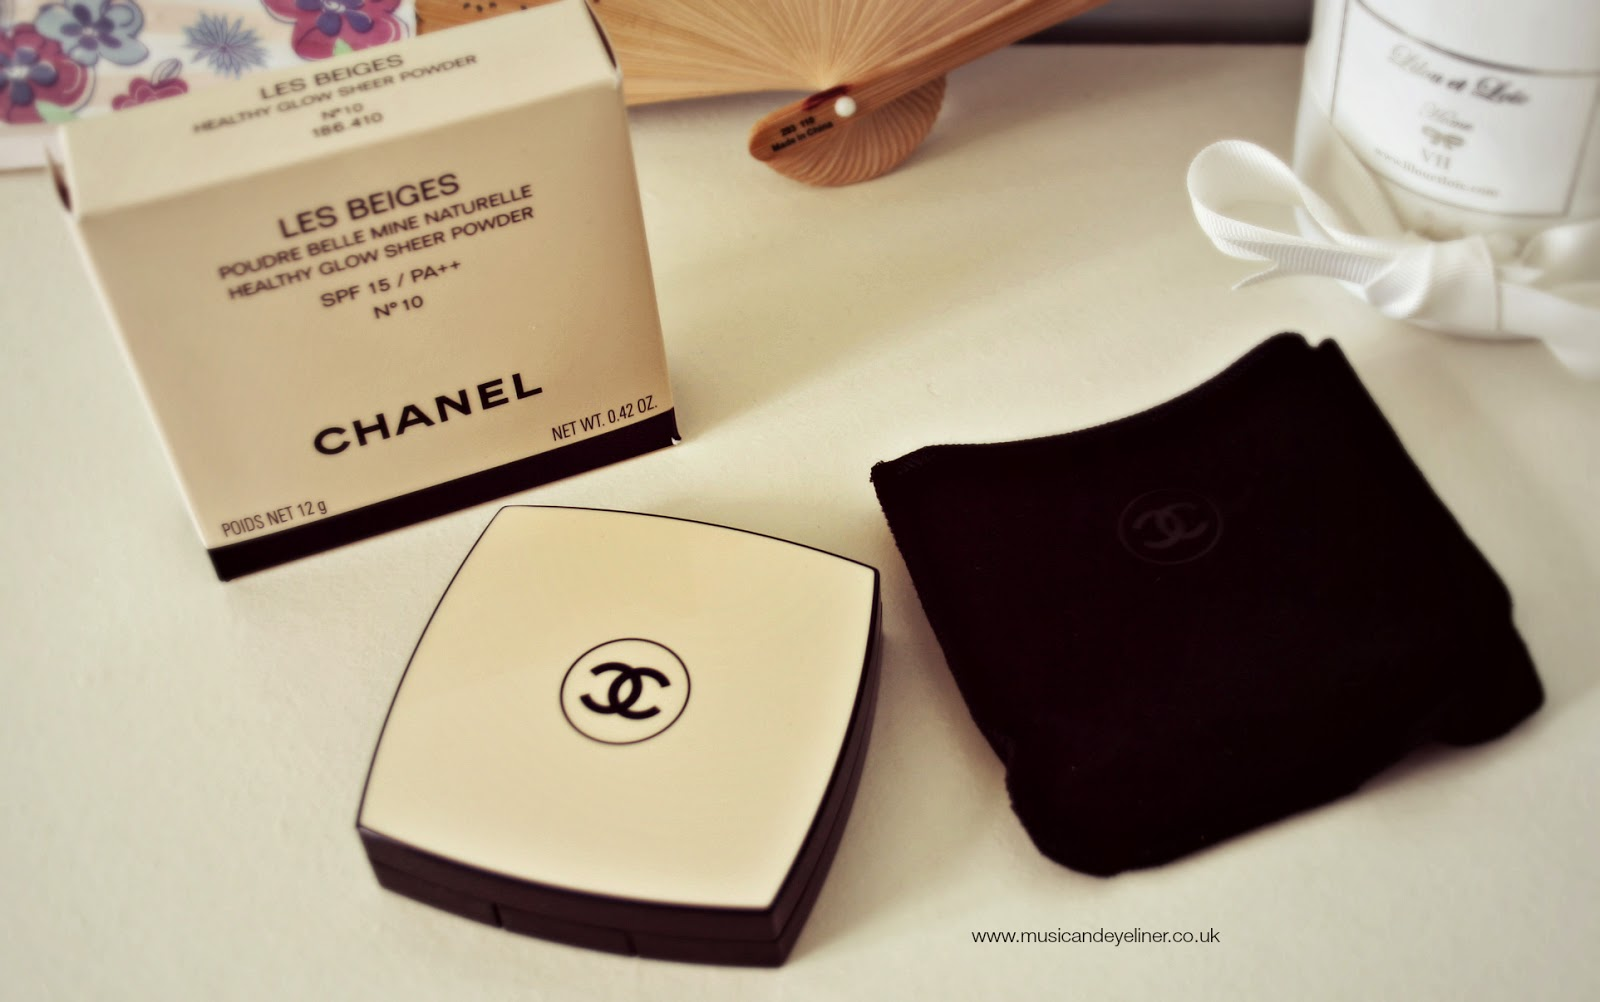 Chanel Les Beiges powder - packaging photo